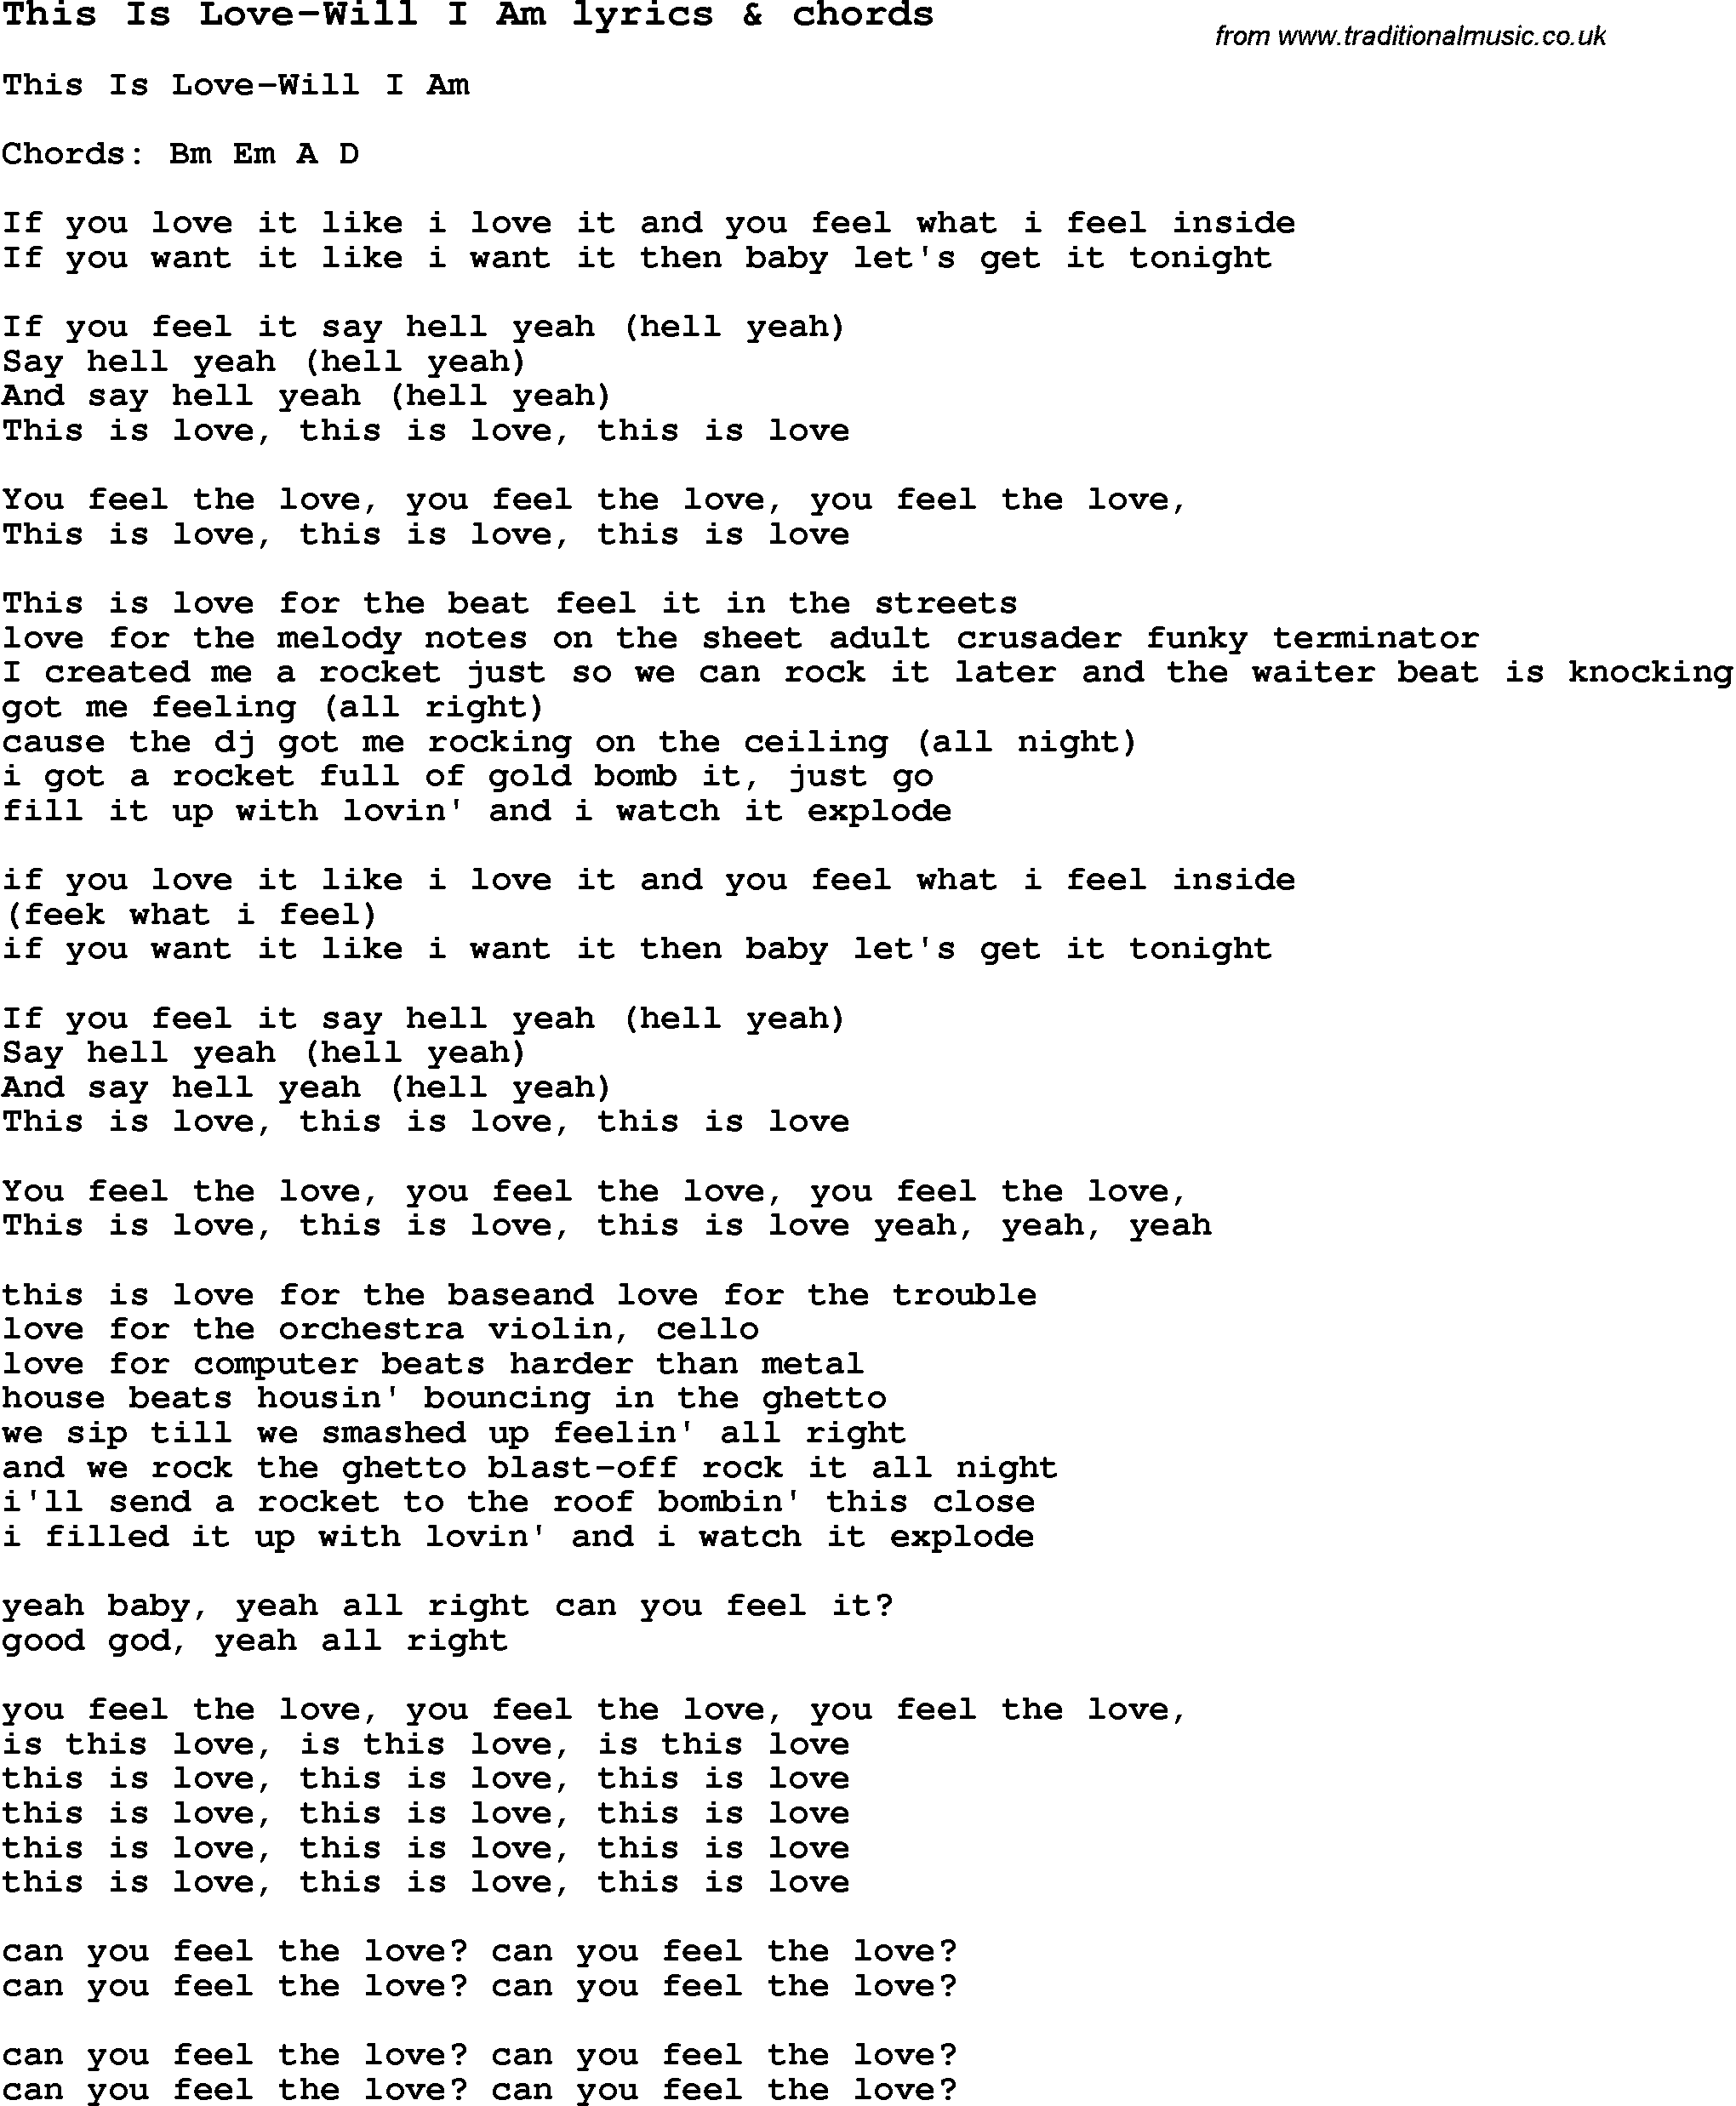 Love Song Lyrics for: This Is Love-Will I Am with chords for Ukulele ...